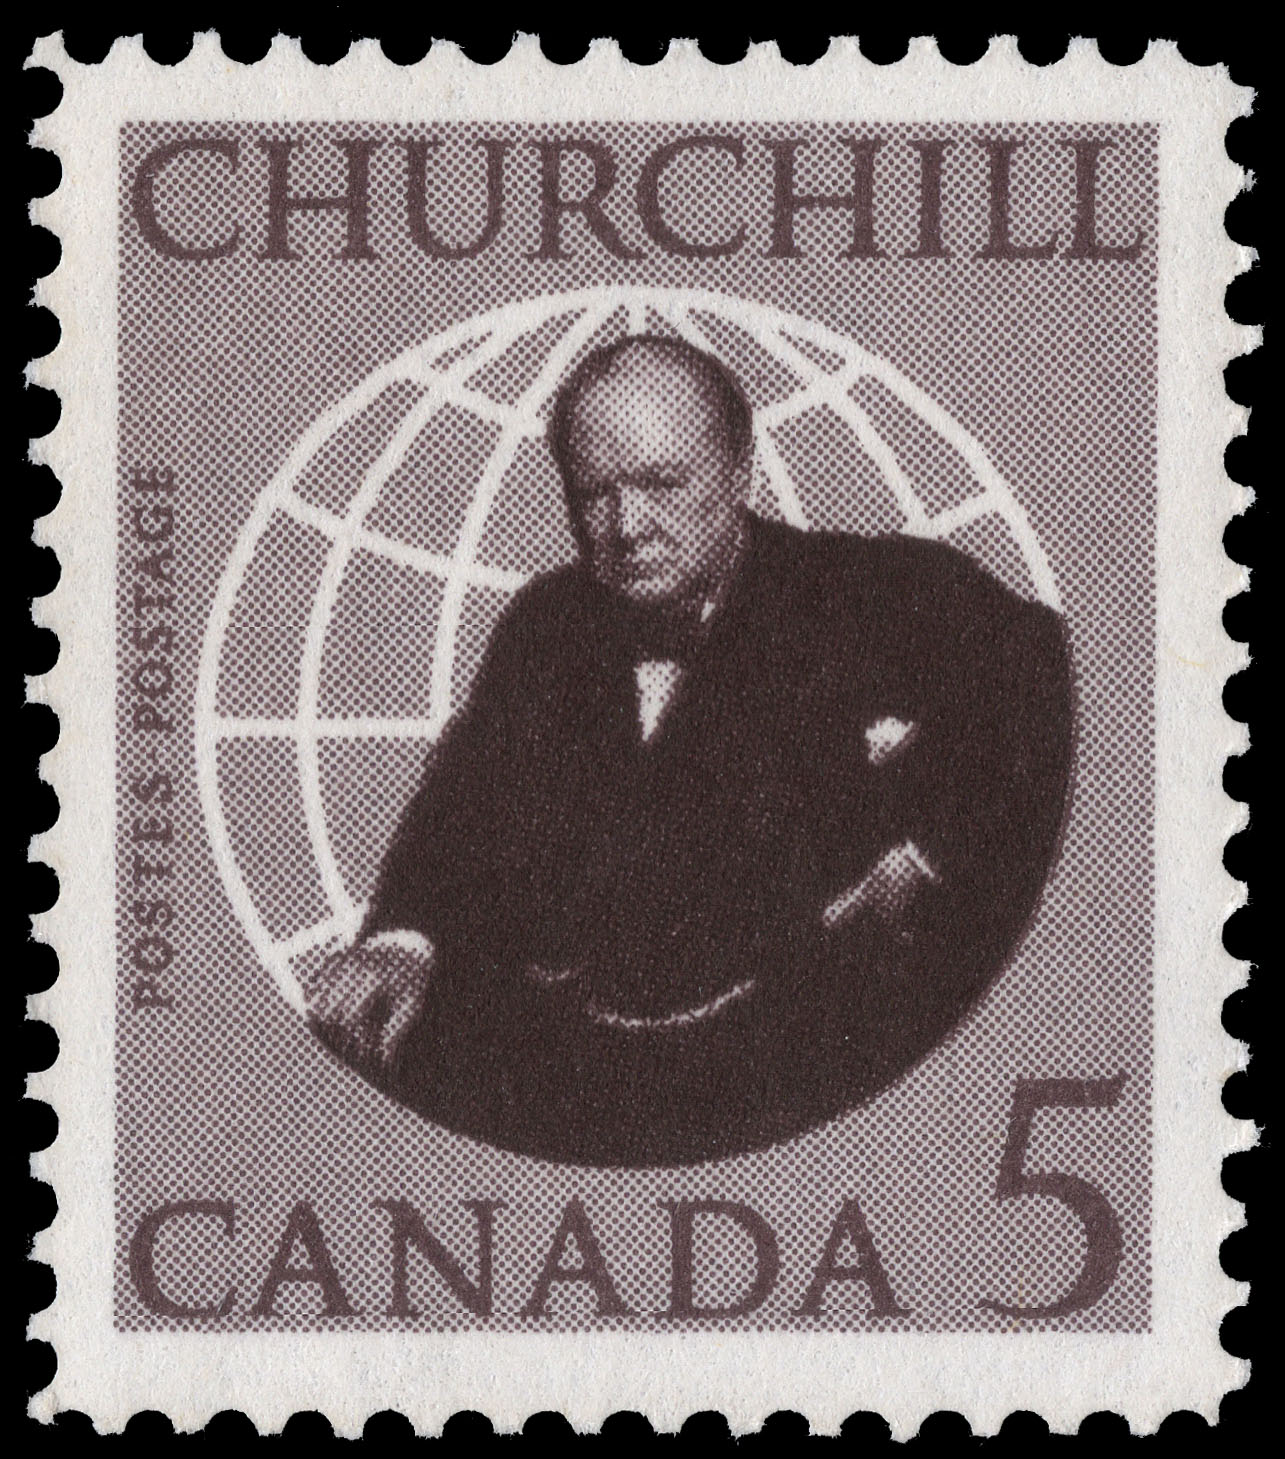 Churchill Canada Postage Stamp